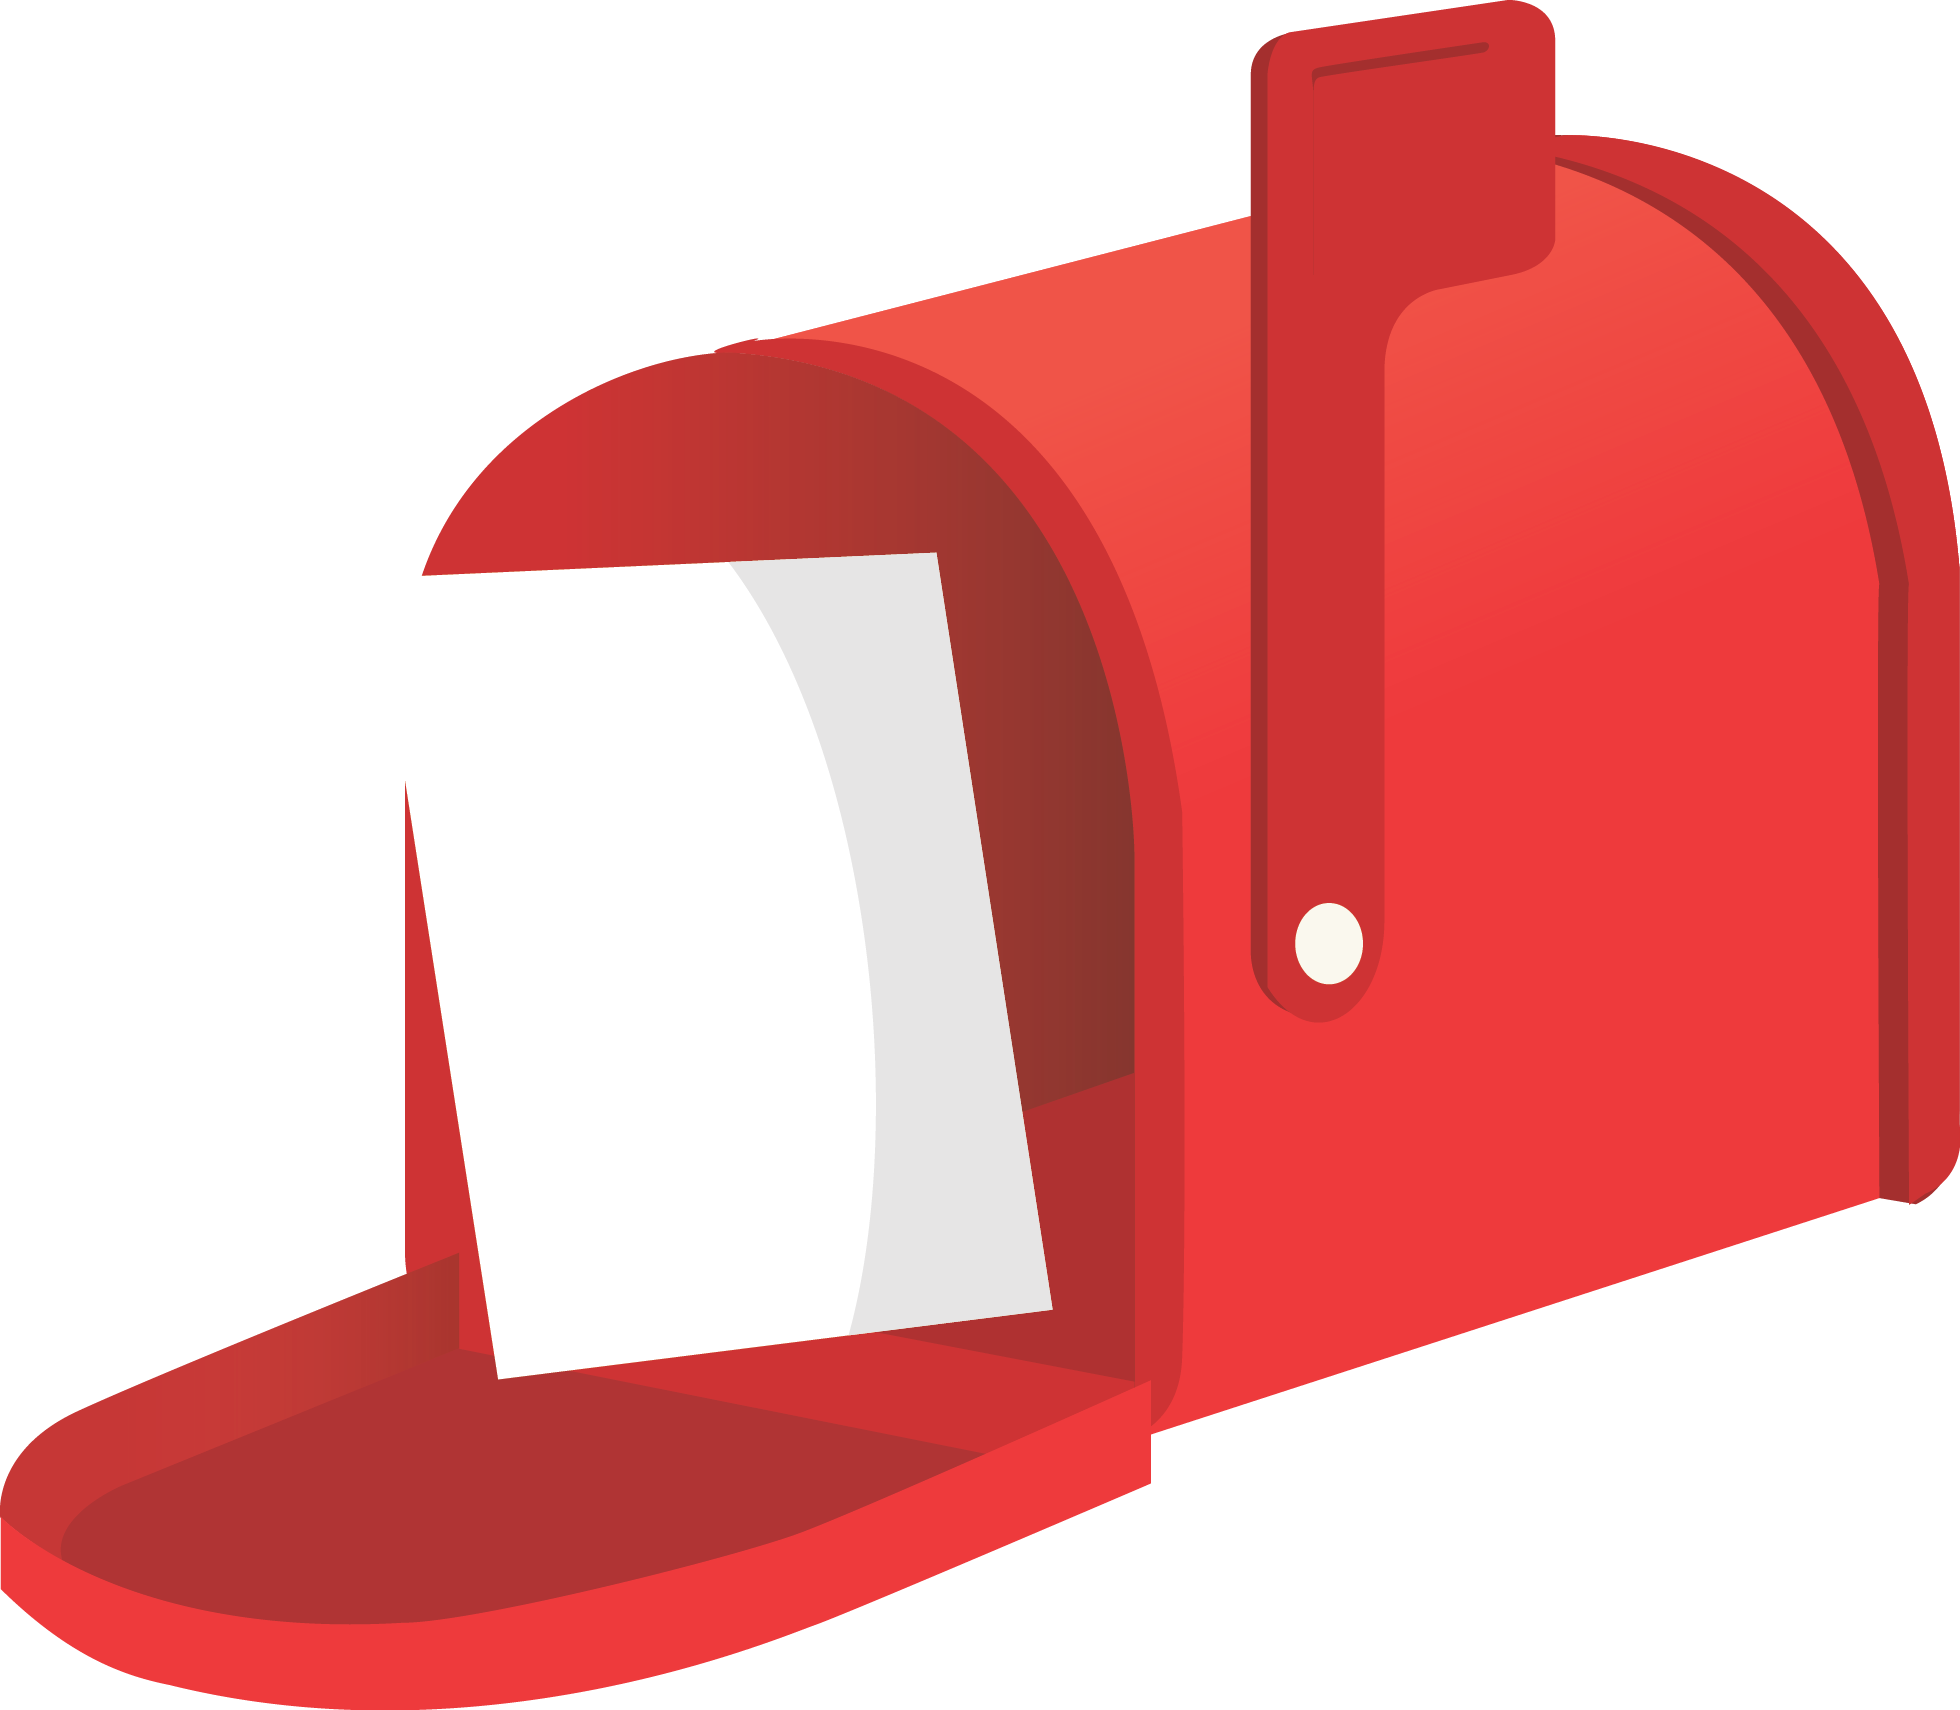 Mail box png. Mailbox postbox images free